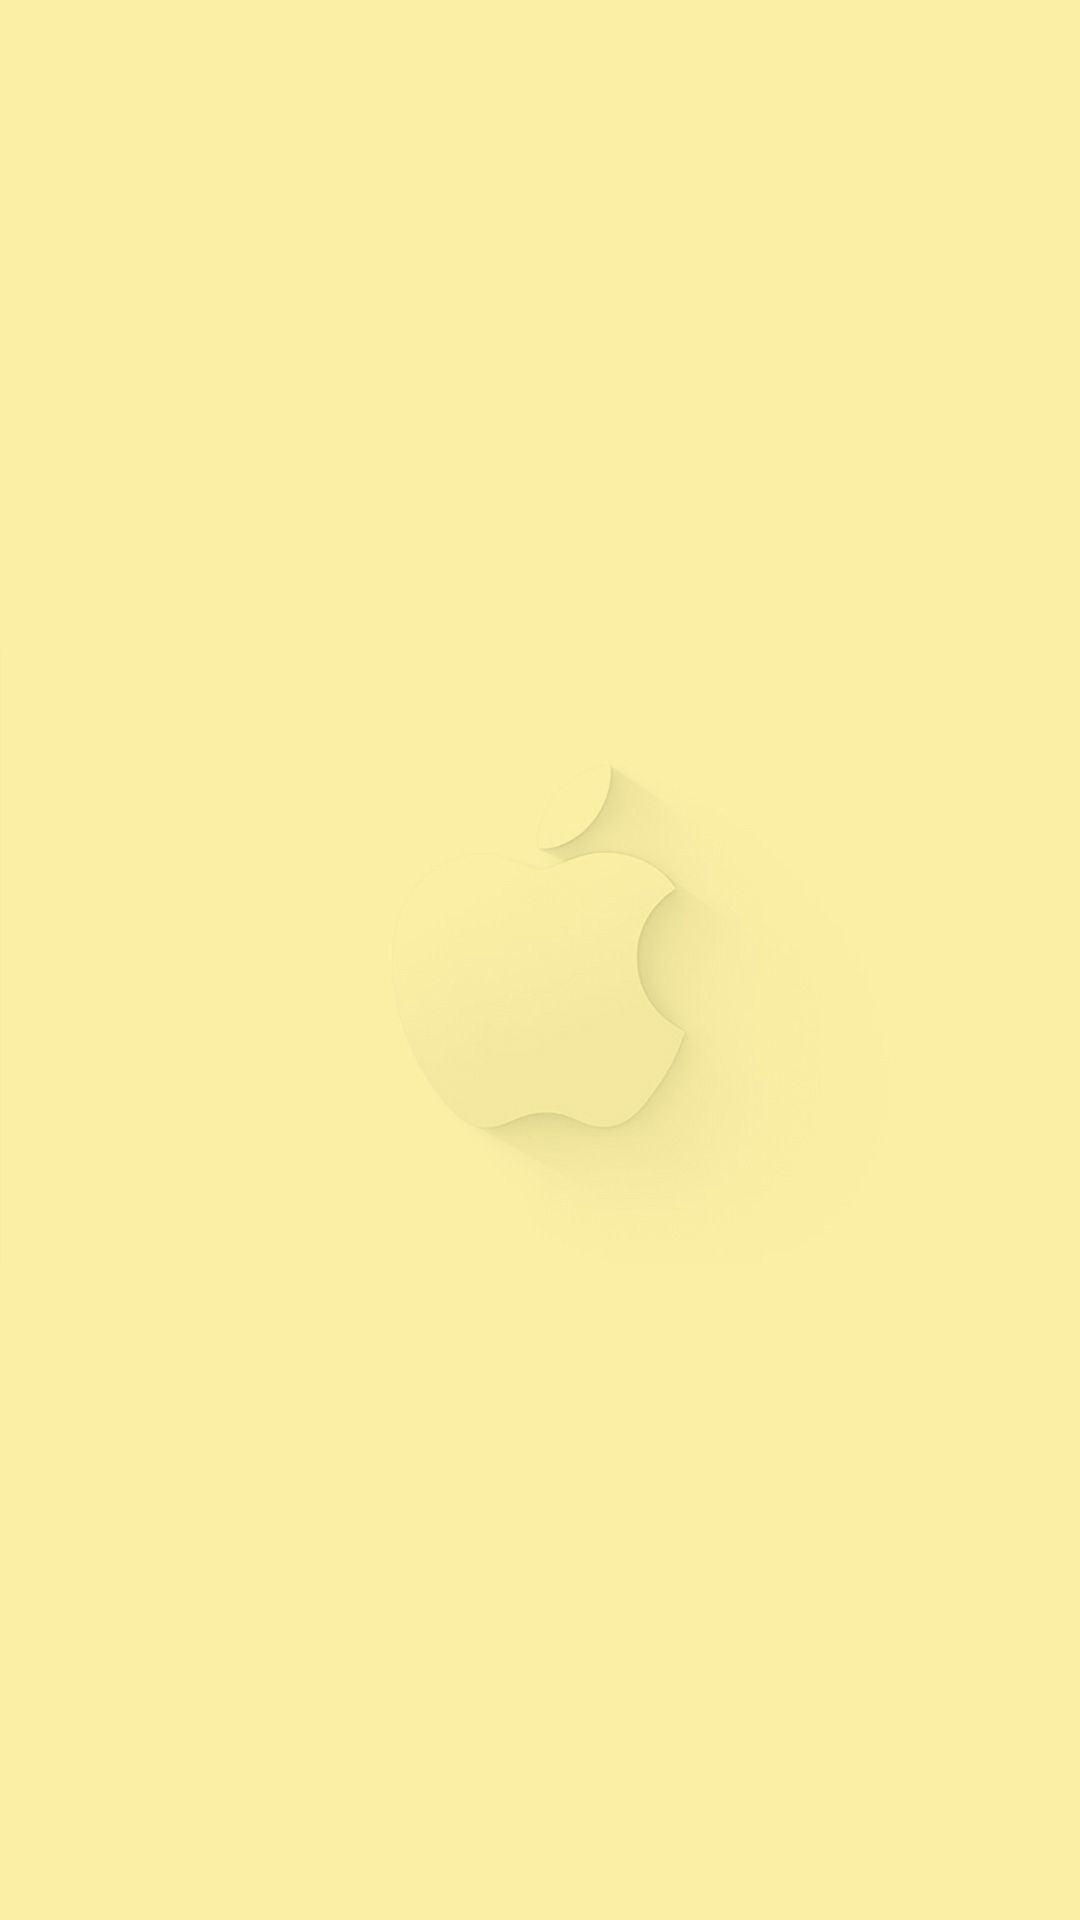 Yellow Iphone 11 Wallpapers Top Free Yellow Iphone 11 Backgrounds Wallpaperaccess